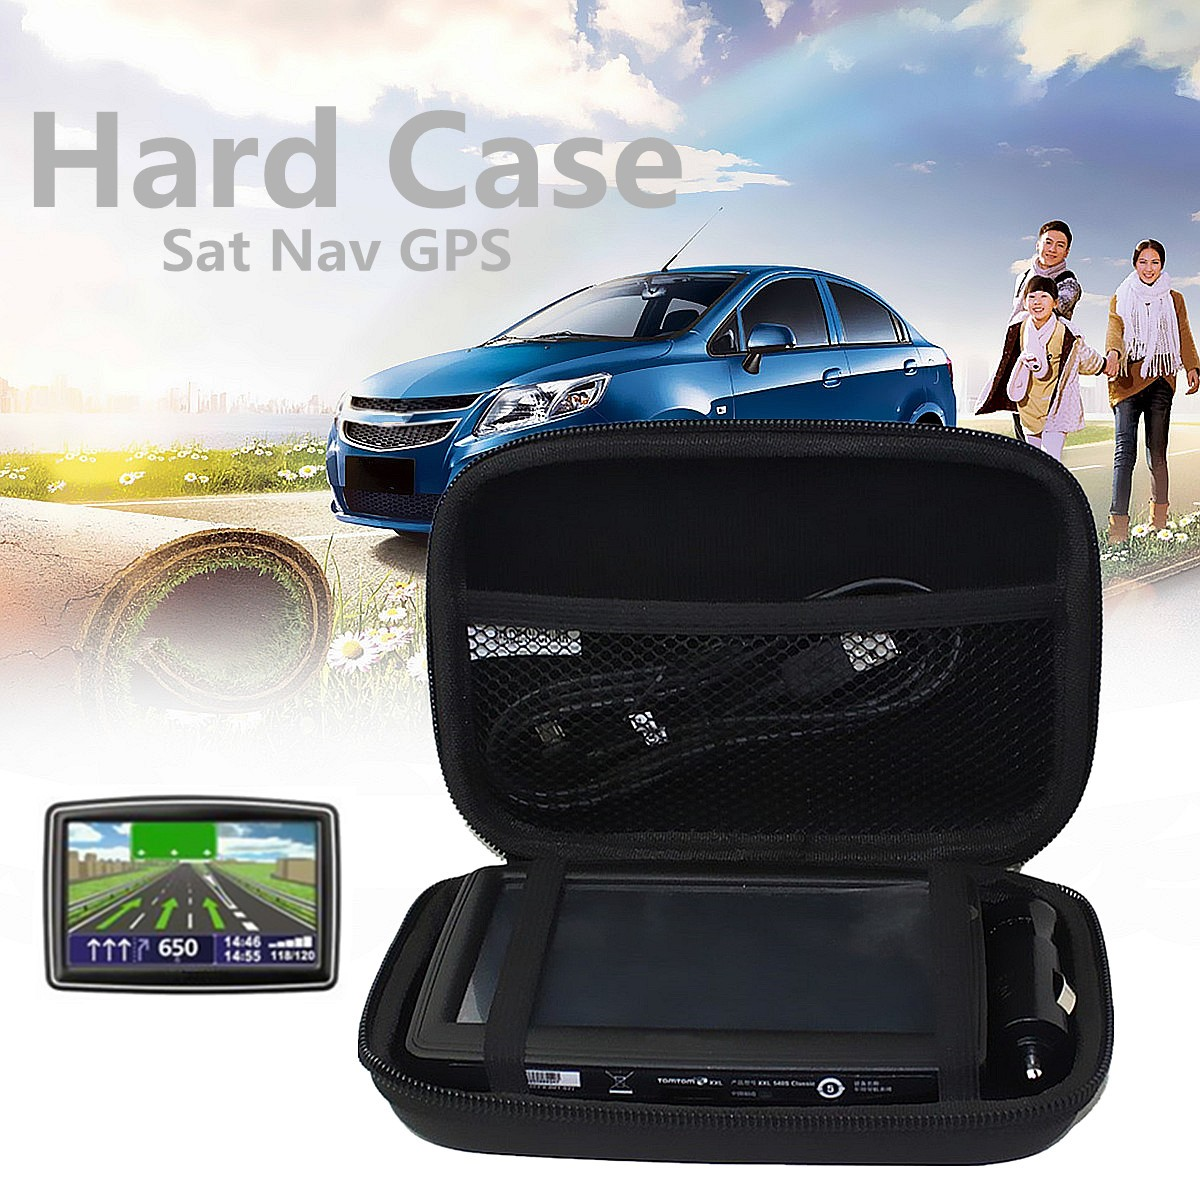 Cover Case Protective-Holder Gps-Navigator Waterproof Gps Tomtom 5000 Sat For Go-5100/5000/510/500